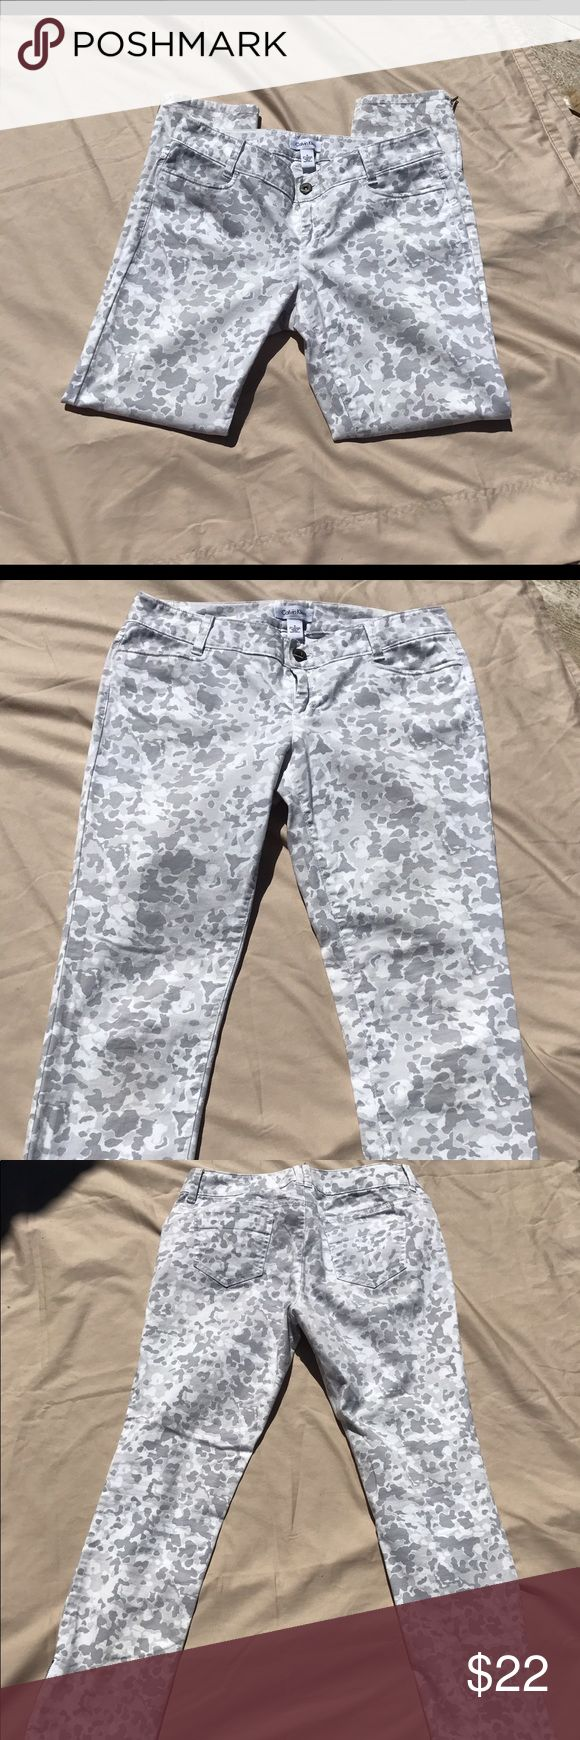 NWOT. Calvin Klein Chelsea skinny pants size 6 NWOT. Calvin Klein Chelsea skinny size 6. White and gray pretty and feminine camo pattern. Calvin Klein Pants